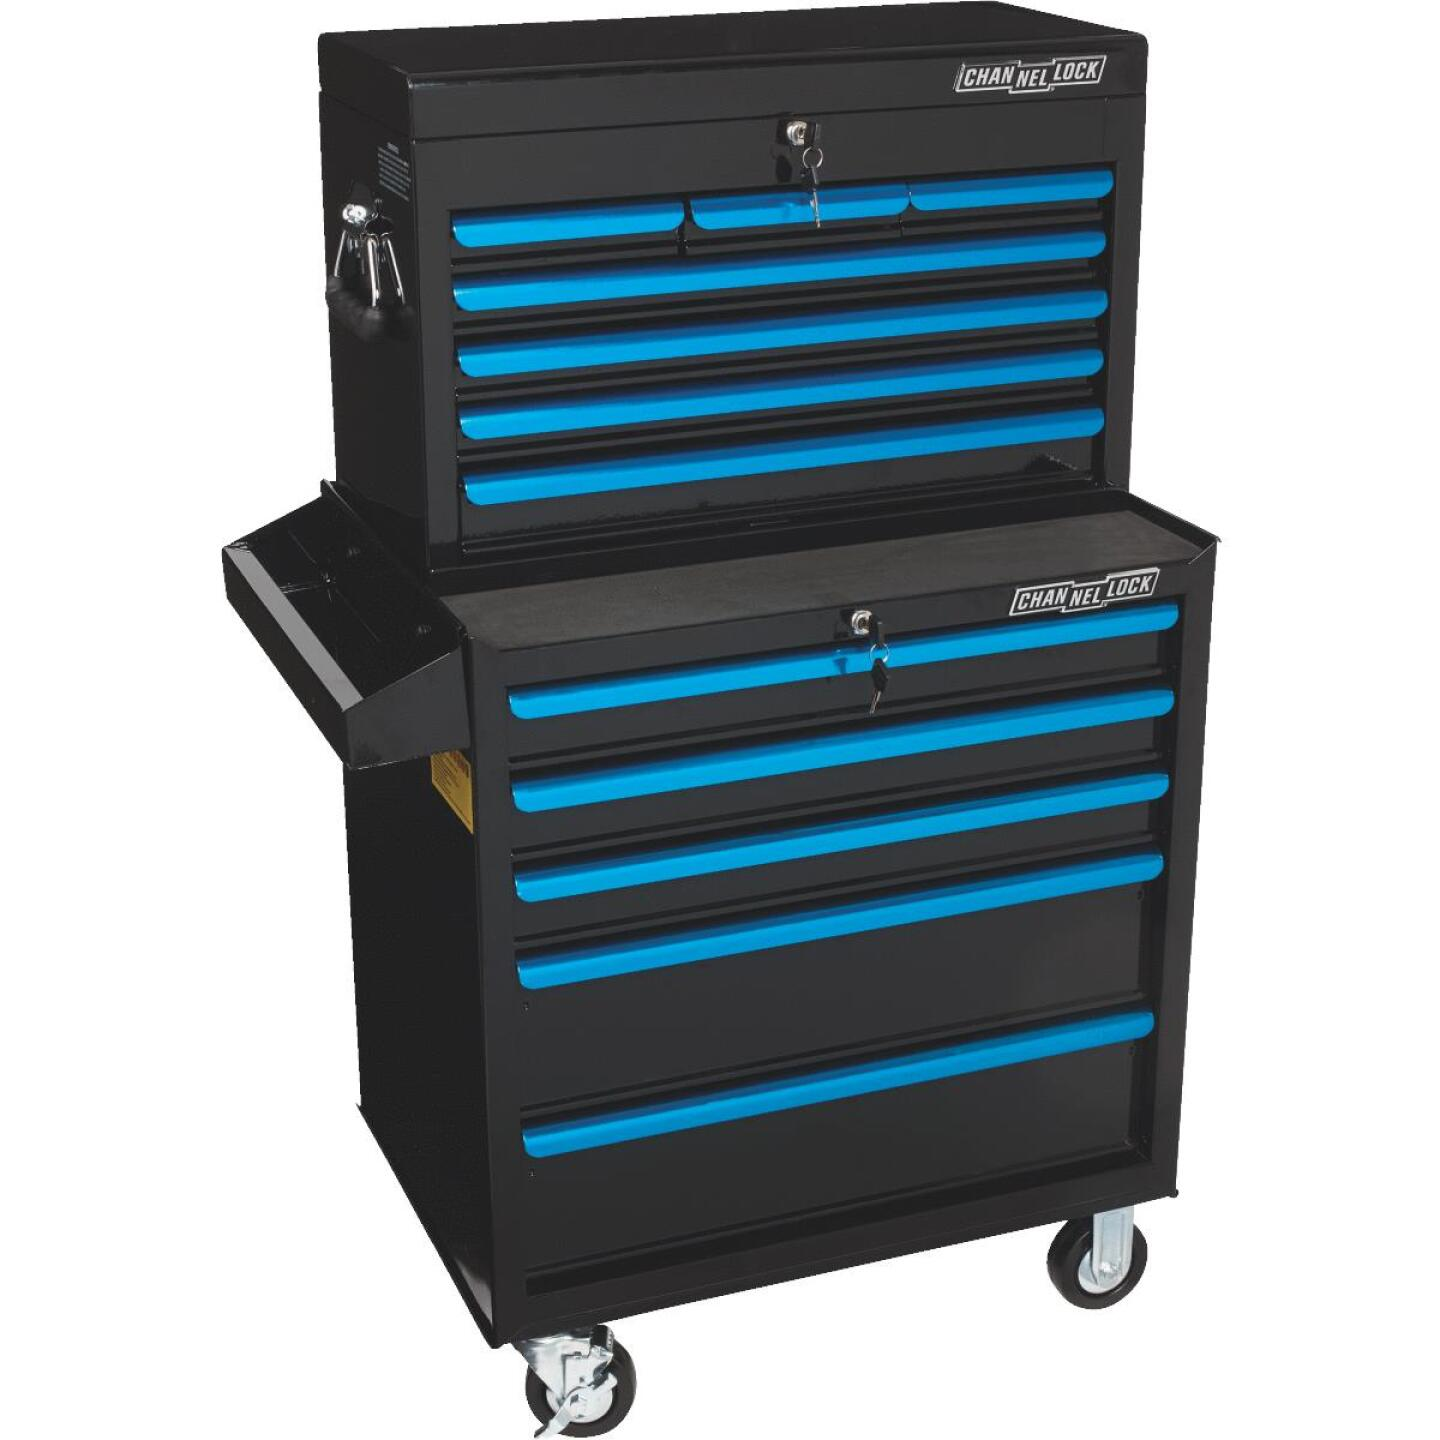 Channellock 26 In. 7-Drawer Black and Blue Tool Chest Image 5